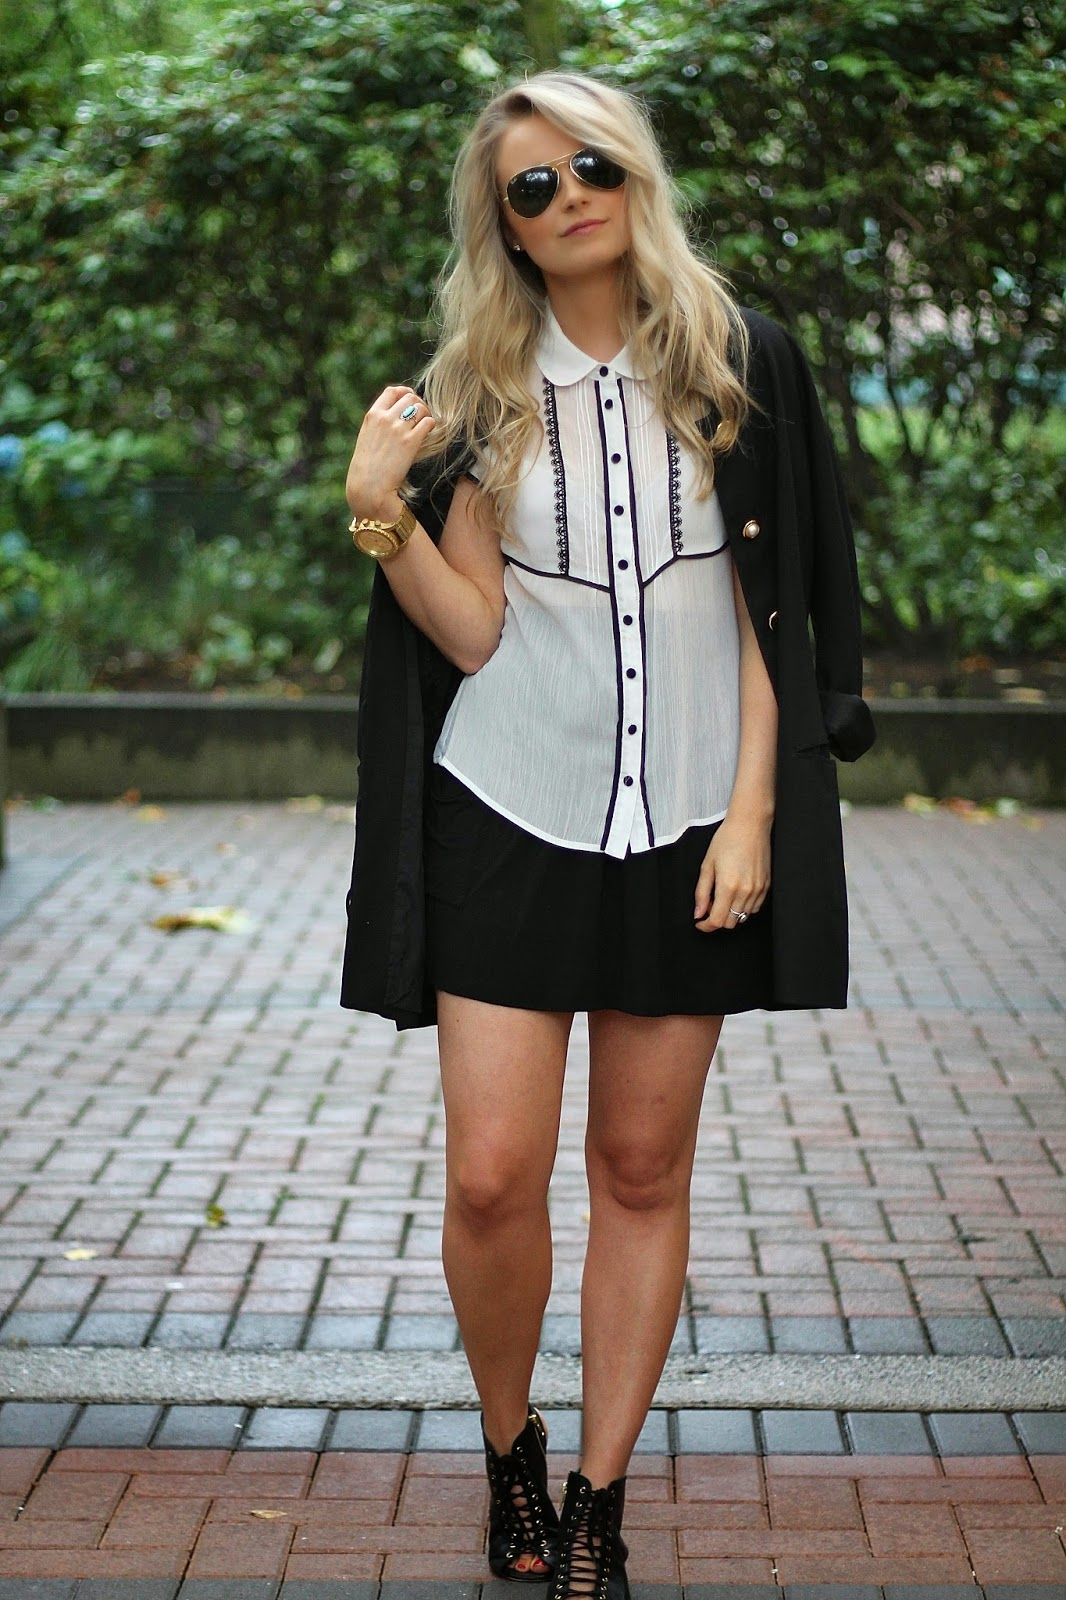 how to make a black and white outfit interesting